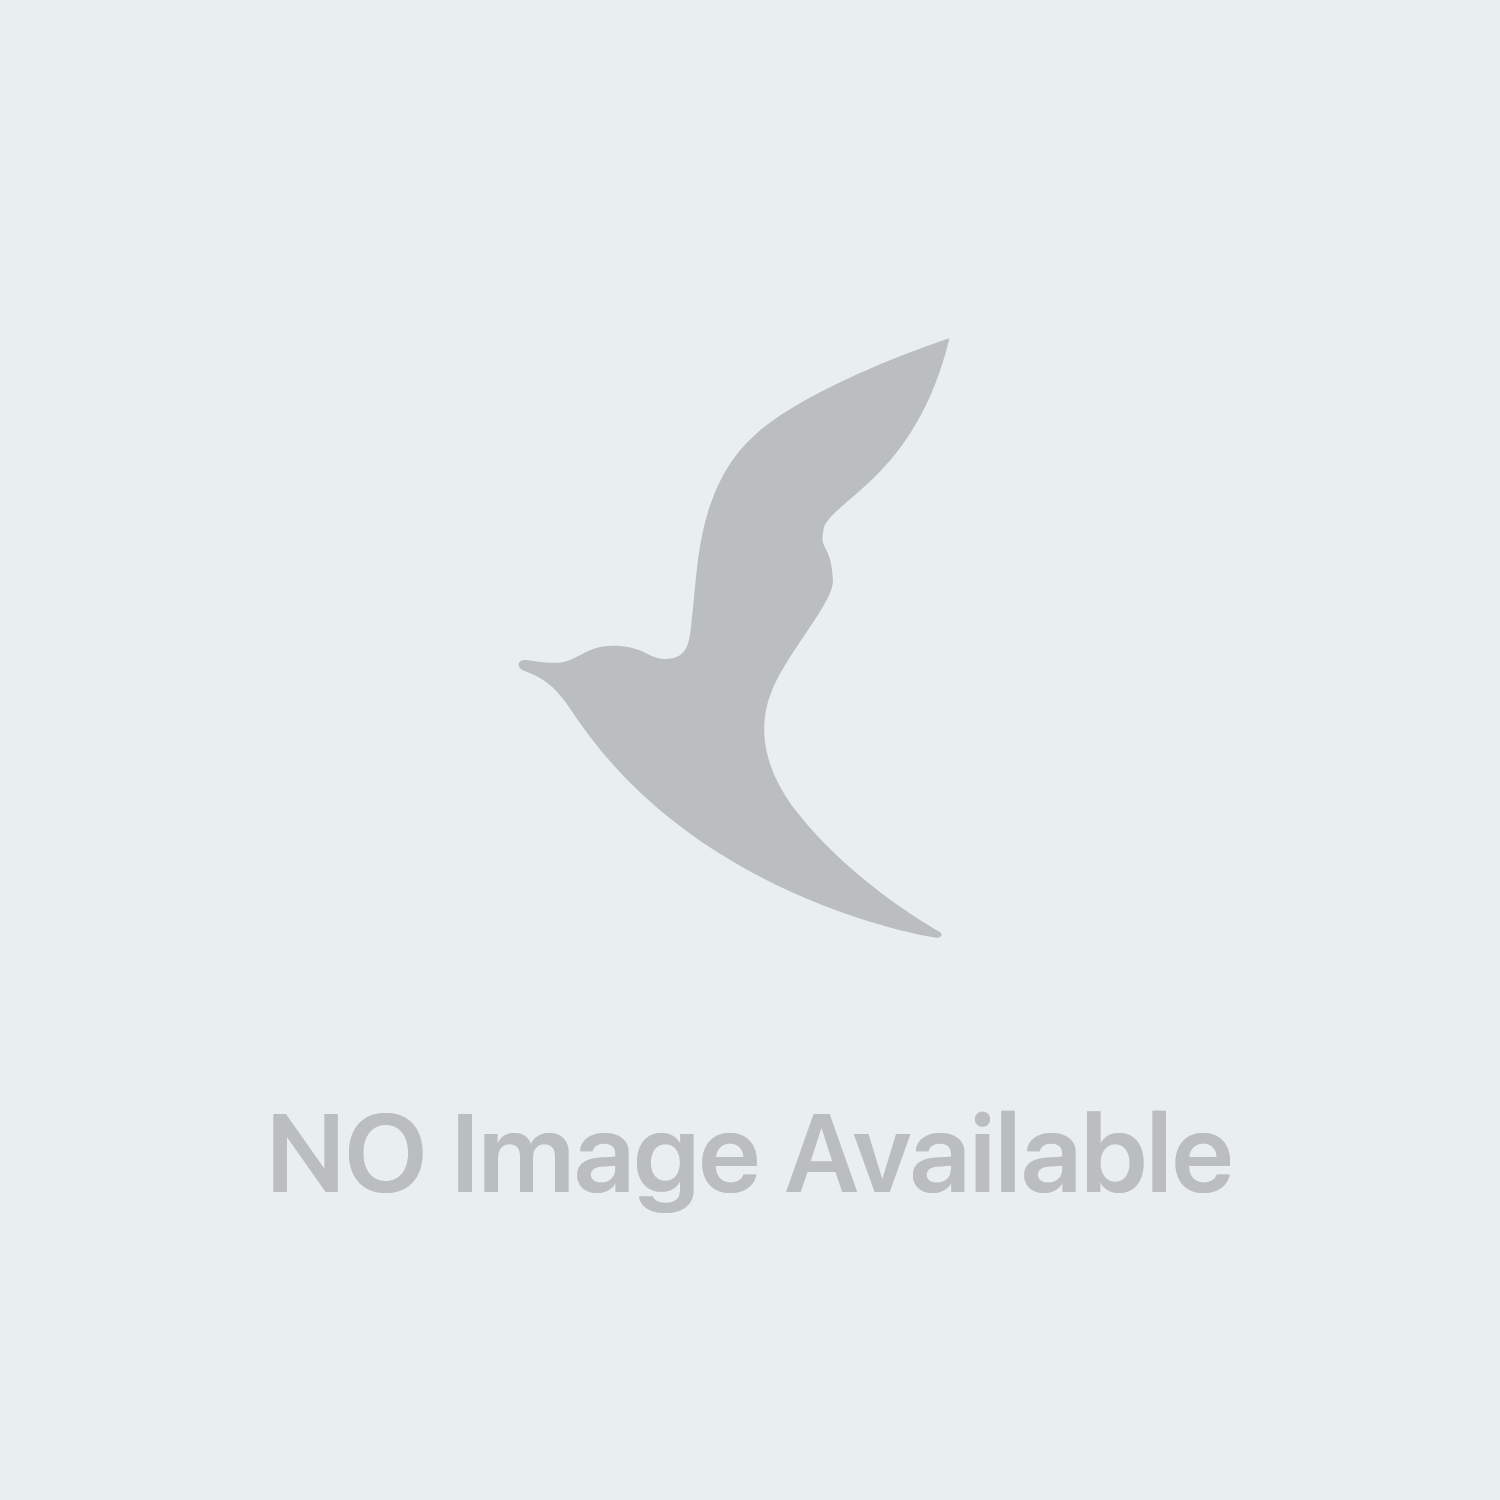 Chifa Tri-tec 14 giorni Repellente Insetti Spray 600ml